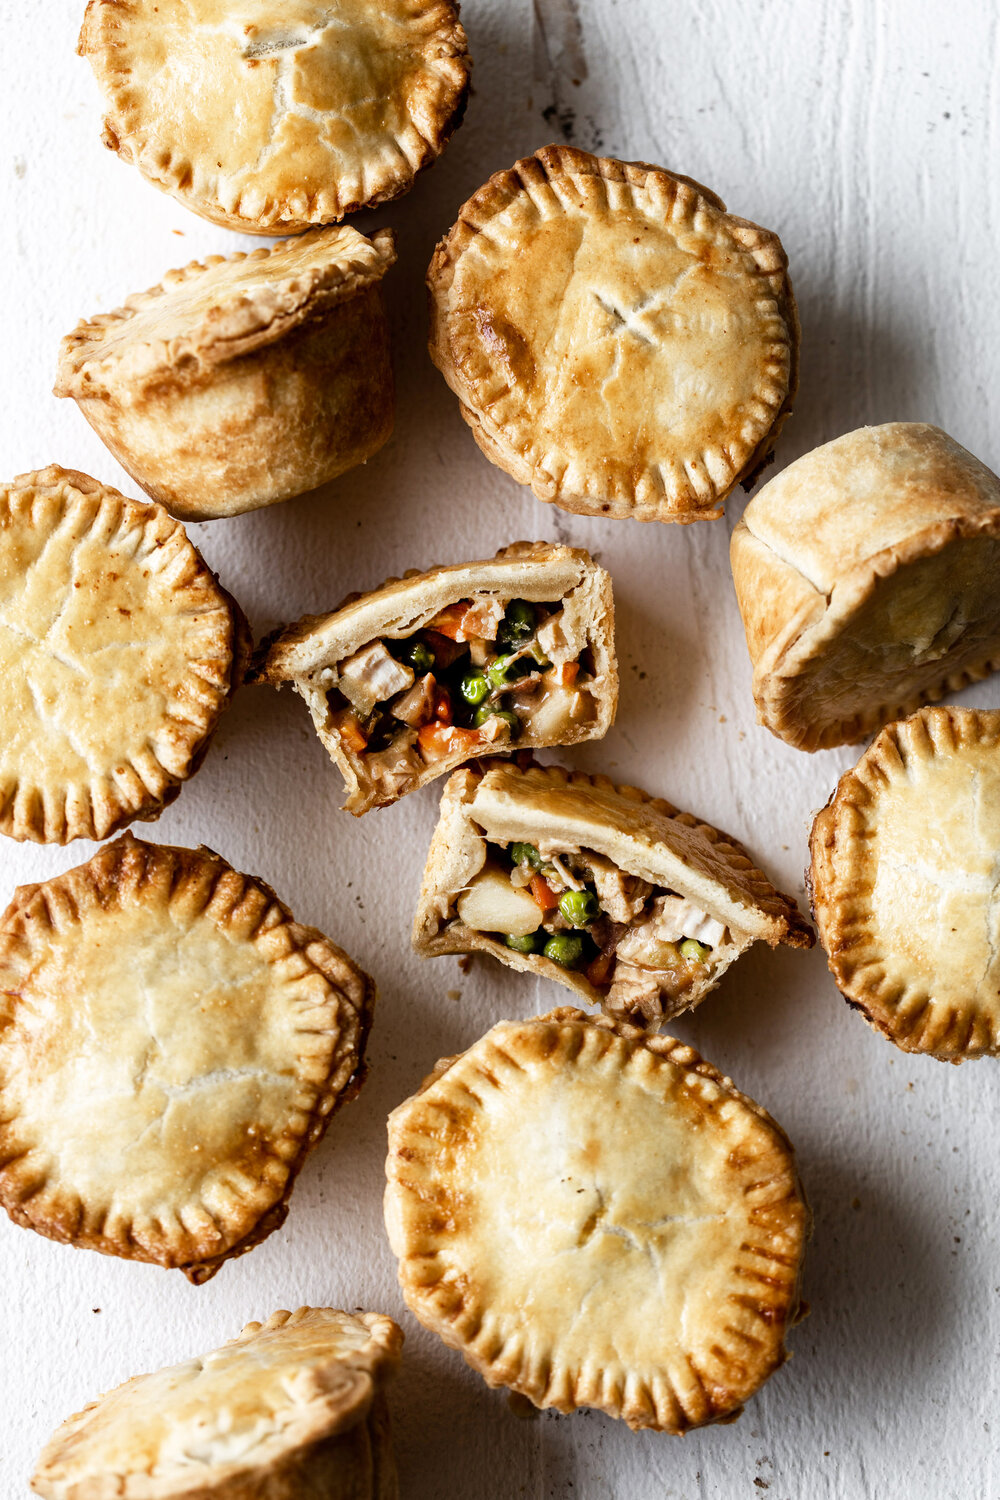 Mini chicken pot pies filled with vegetables, creamy chicken and prosciutto in a flakey, buttery crust make the perfect bite-size dinner.